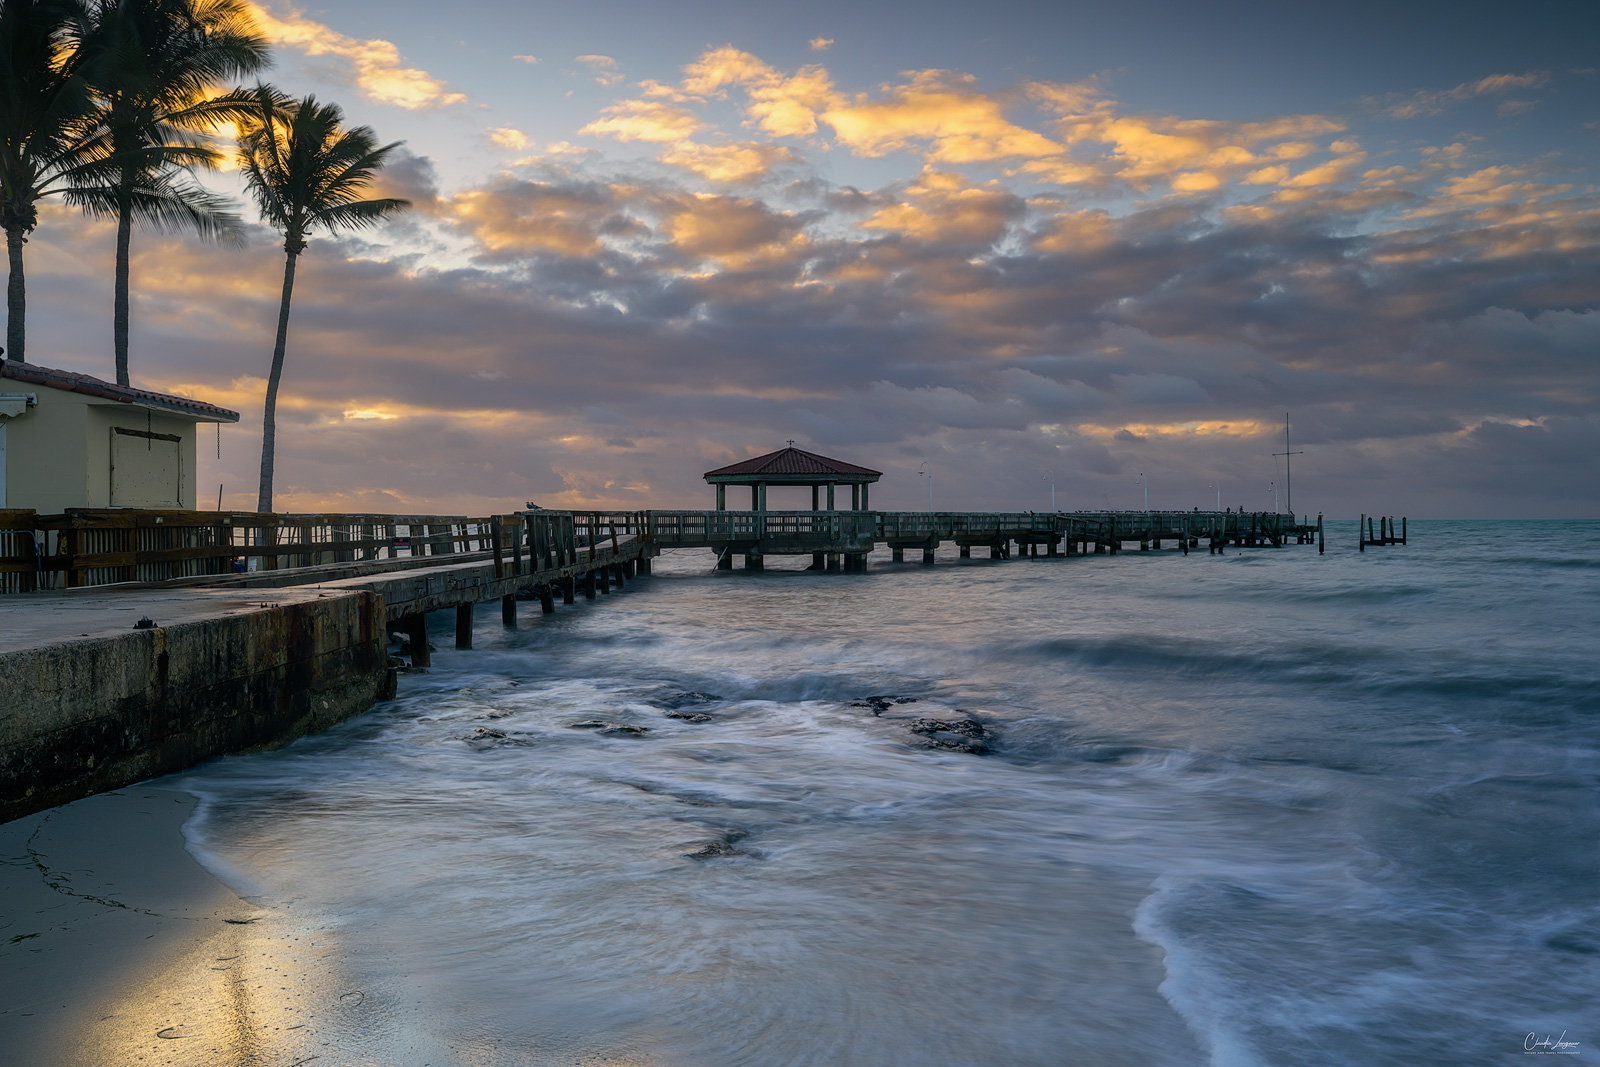 View of the pier at John & Mary Spottswood Waterfront Park in Key West in Florida at sunrise.